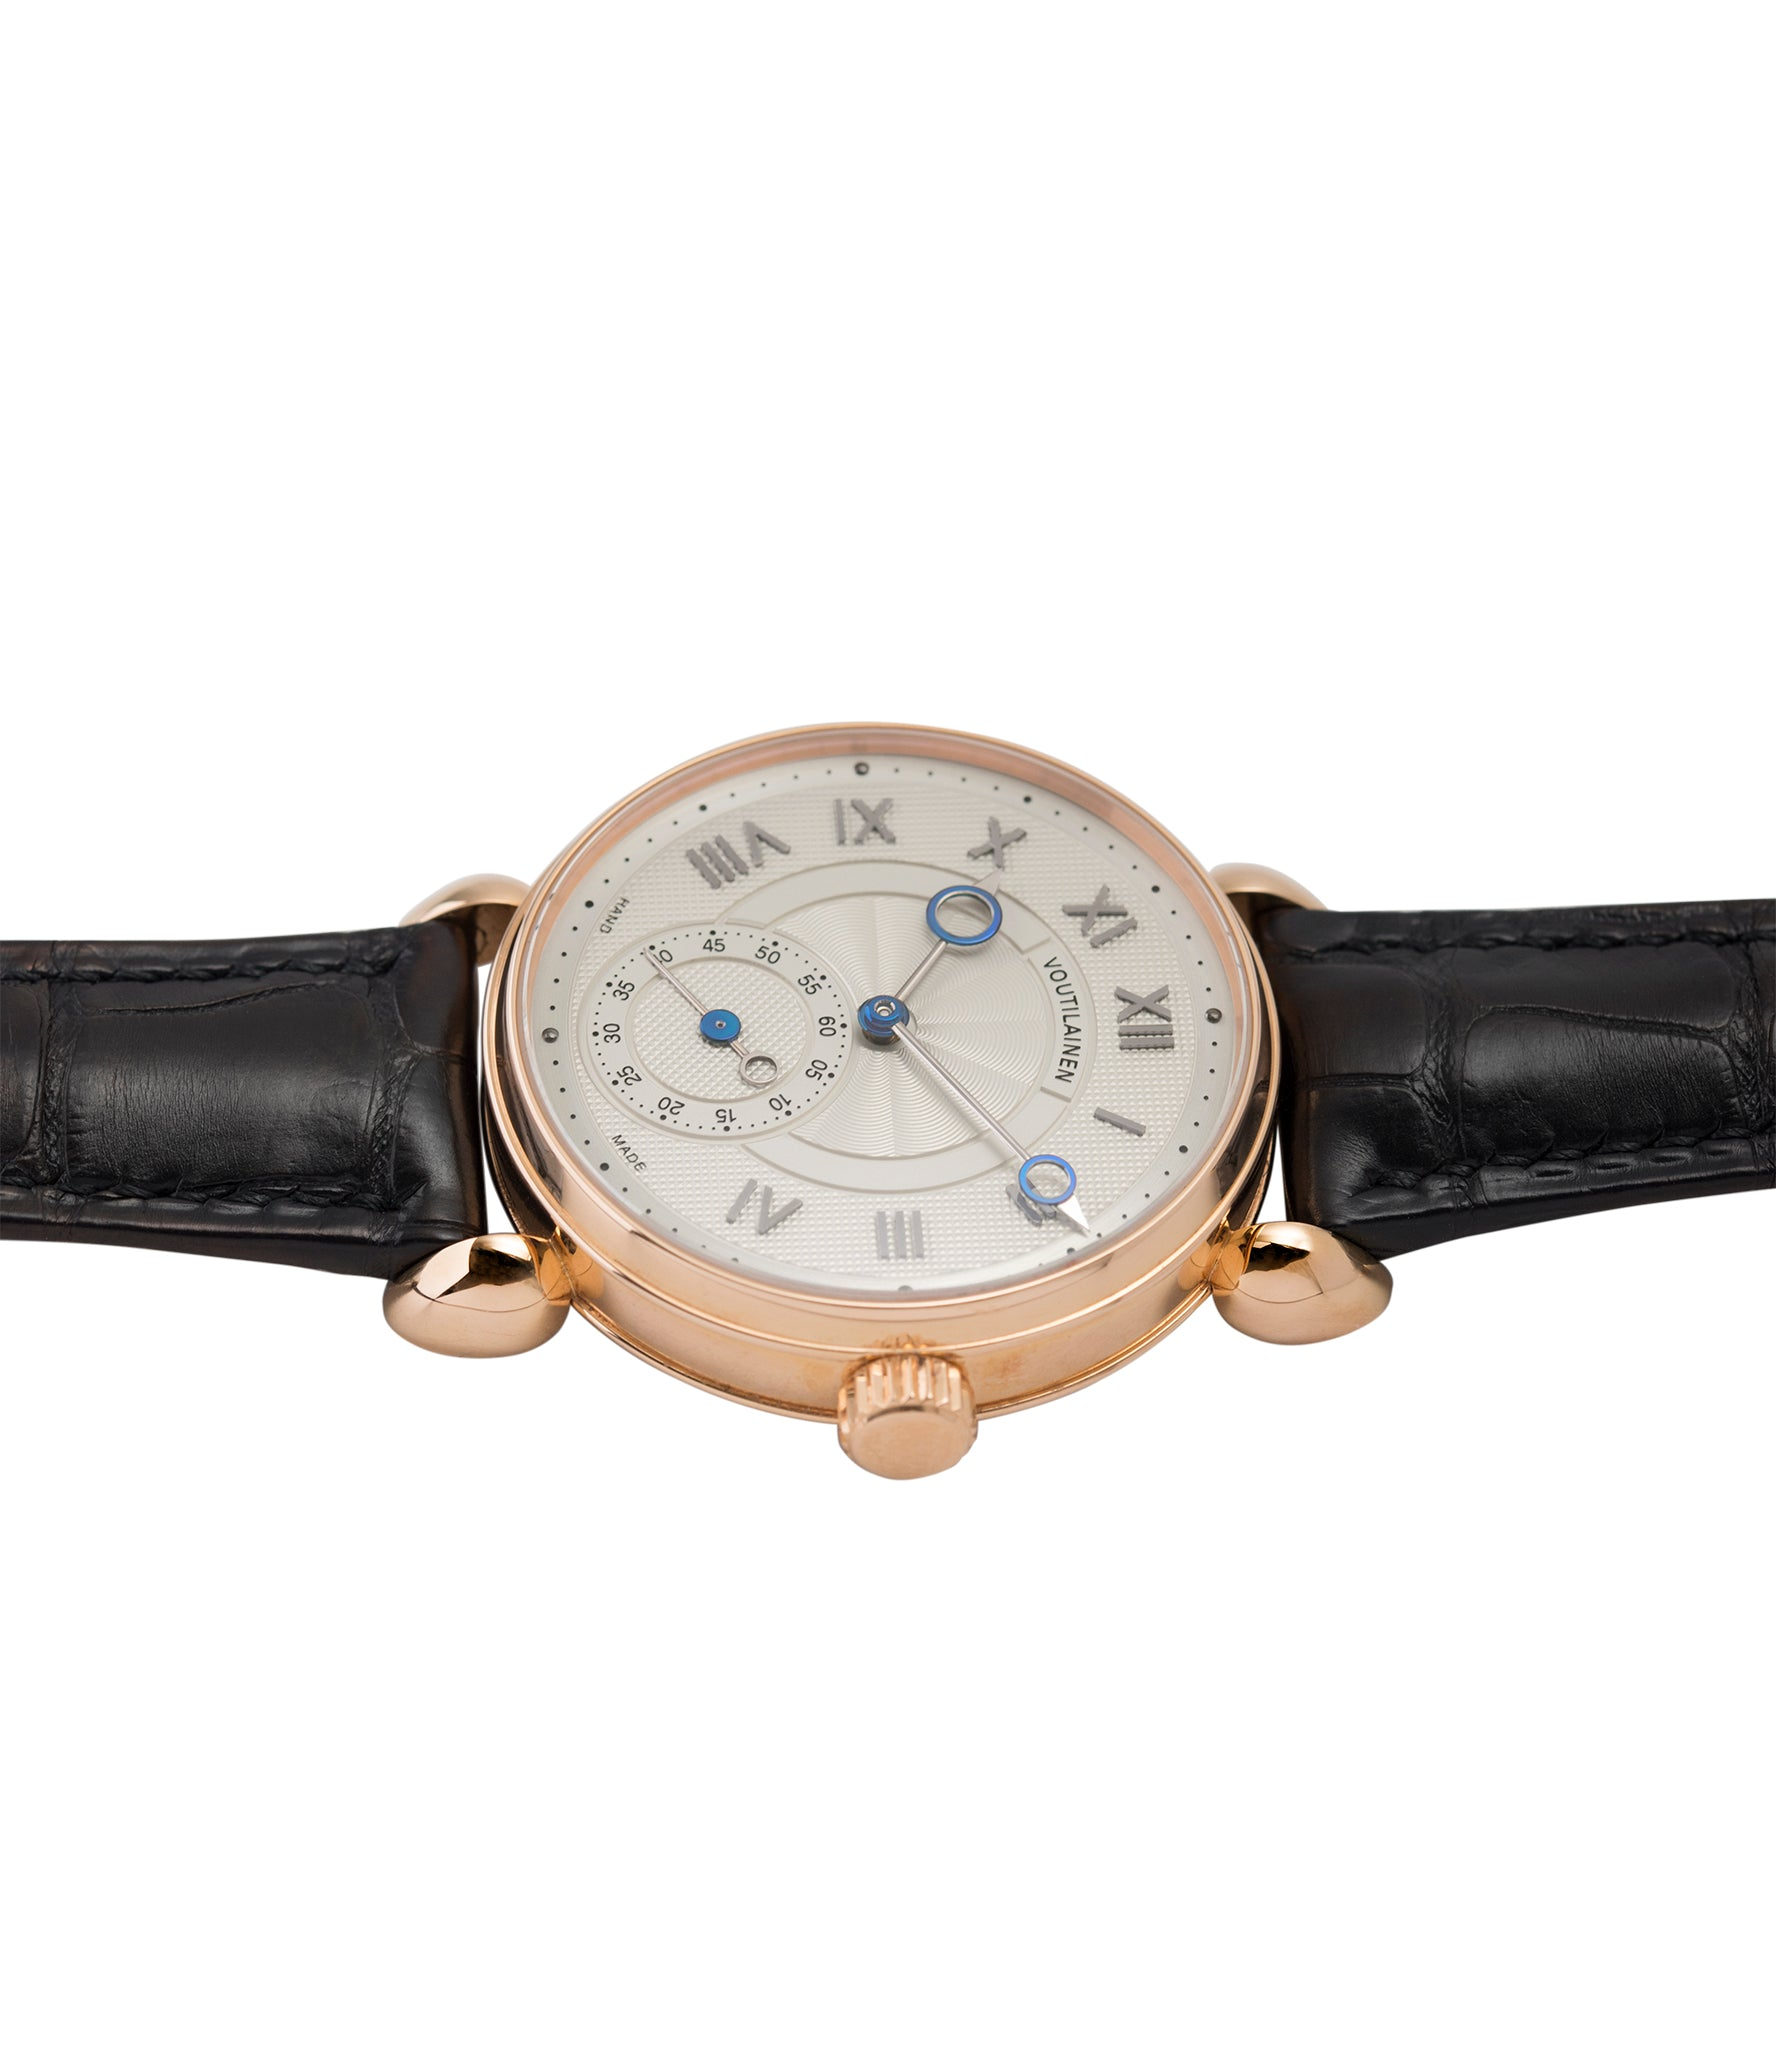 gents rare watch Voutilainen Observatoire Limited Edition rose gold rare dress watch for sale online at A Collected Man London endorsed seller of independent watchmaker